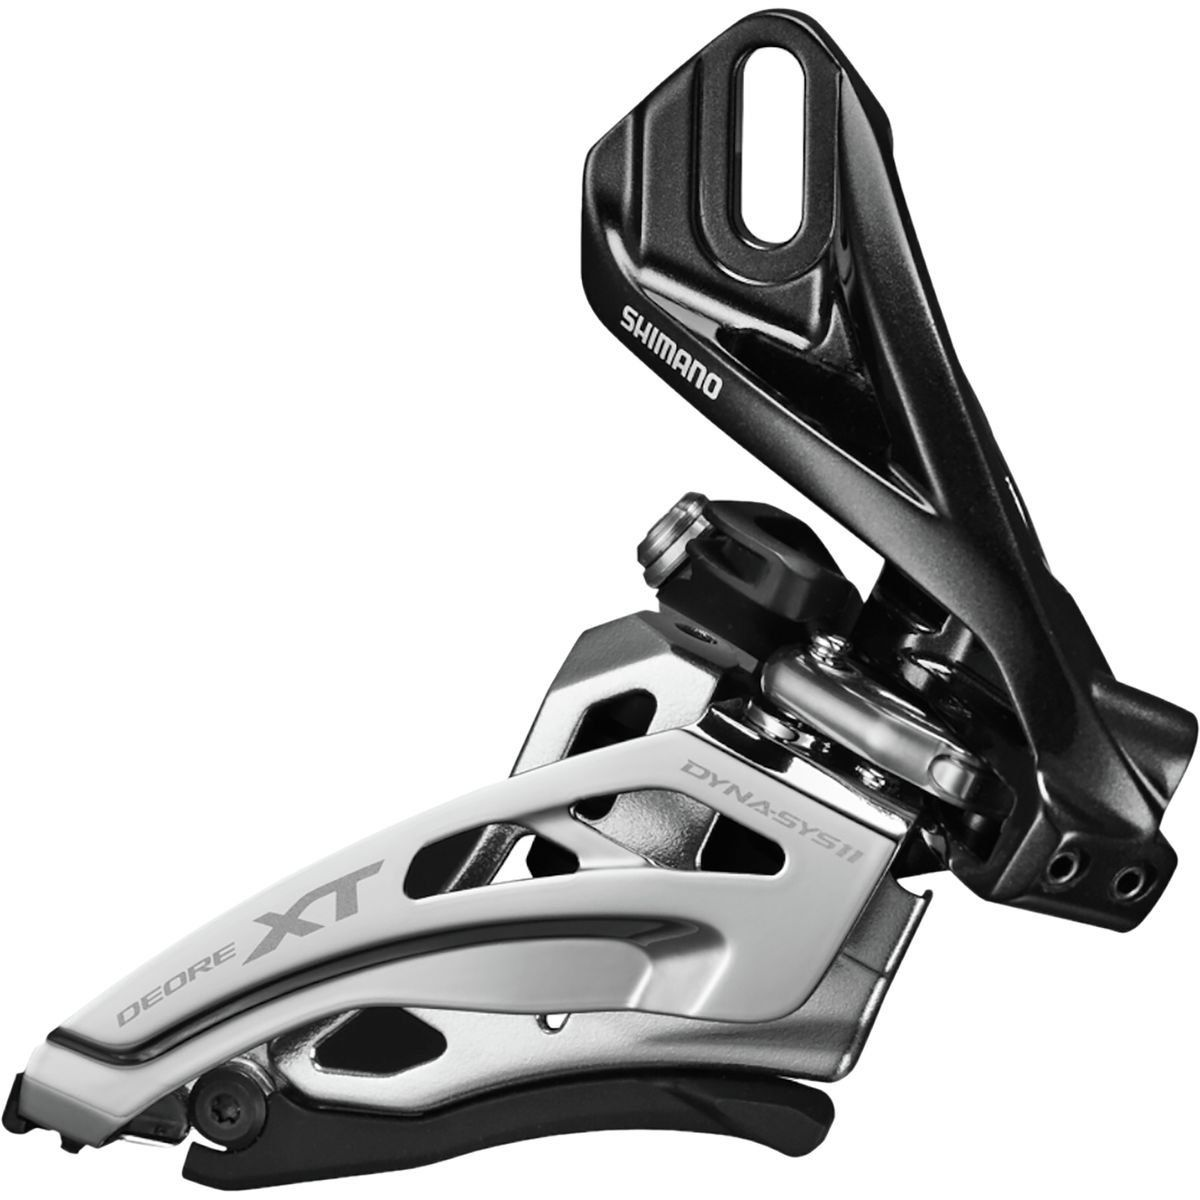 Запчасть Shimano Deore XT M8020-D (IFDM8020D6) shimano deore xt m771 silver 9s 27s speed mtb bicycle rear derailleur part long cage